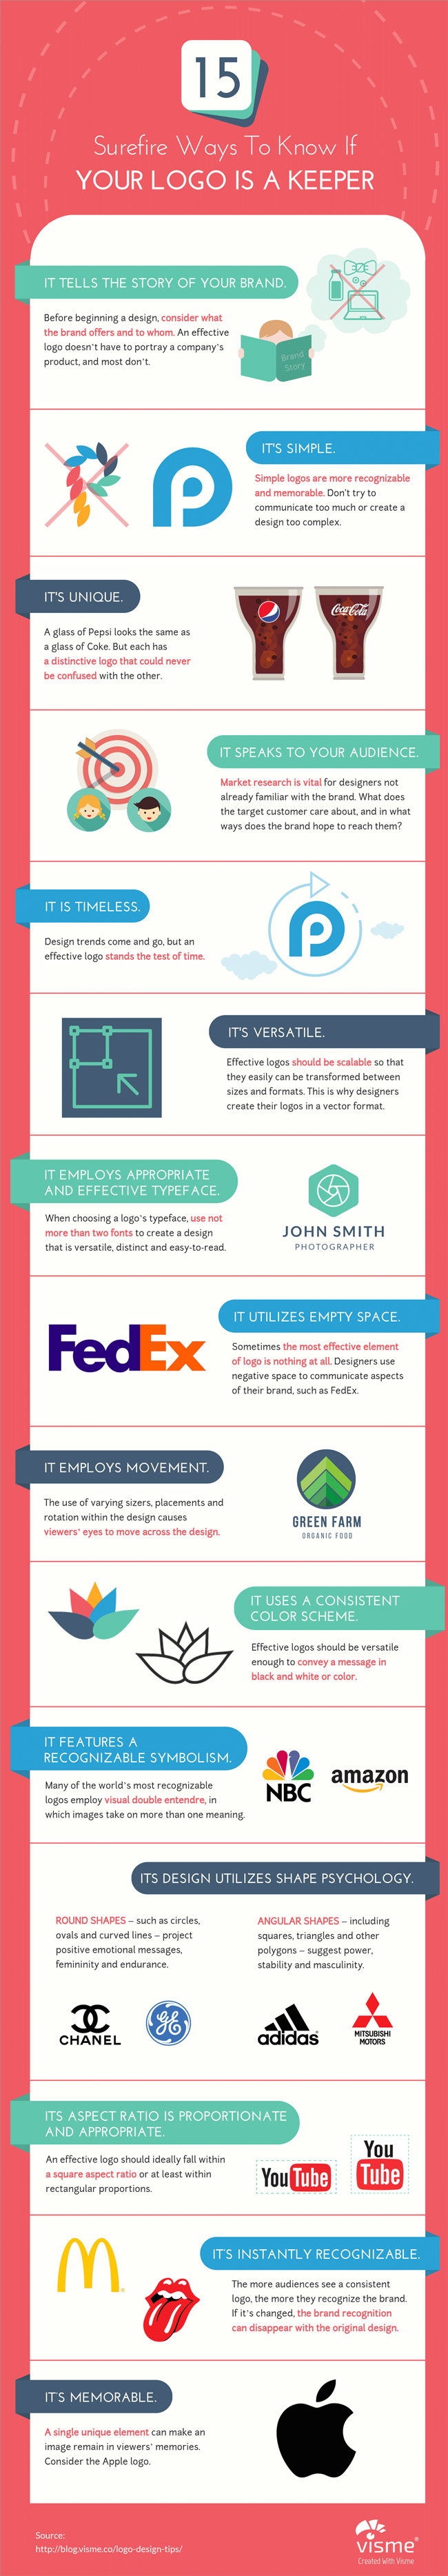 How To Create The Right Logo for Your Brand (Infographic) 1